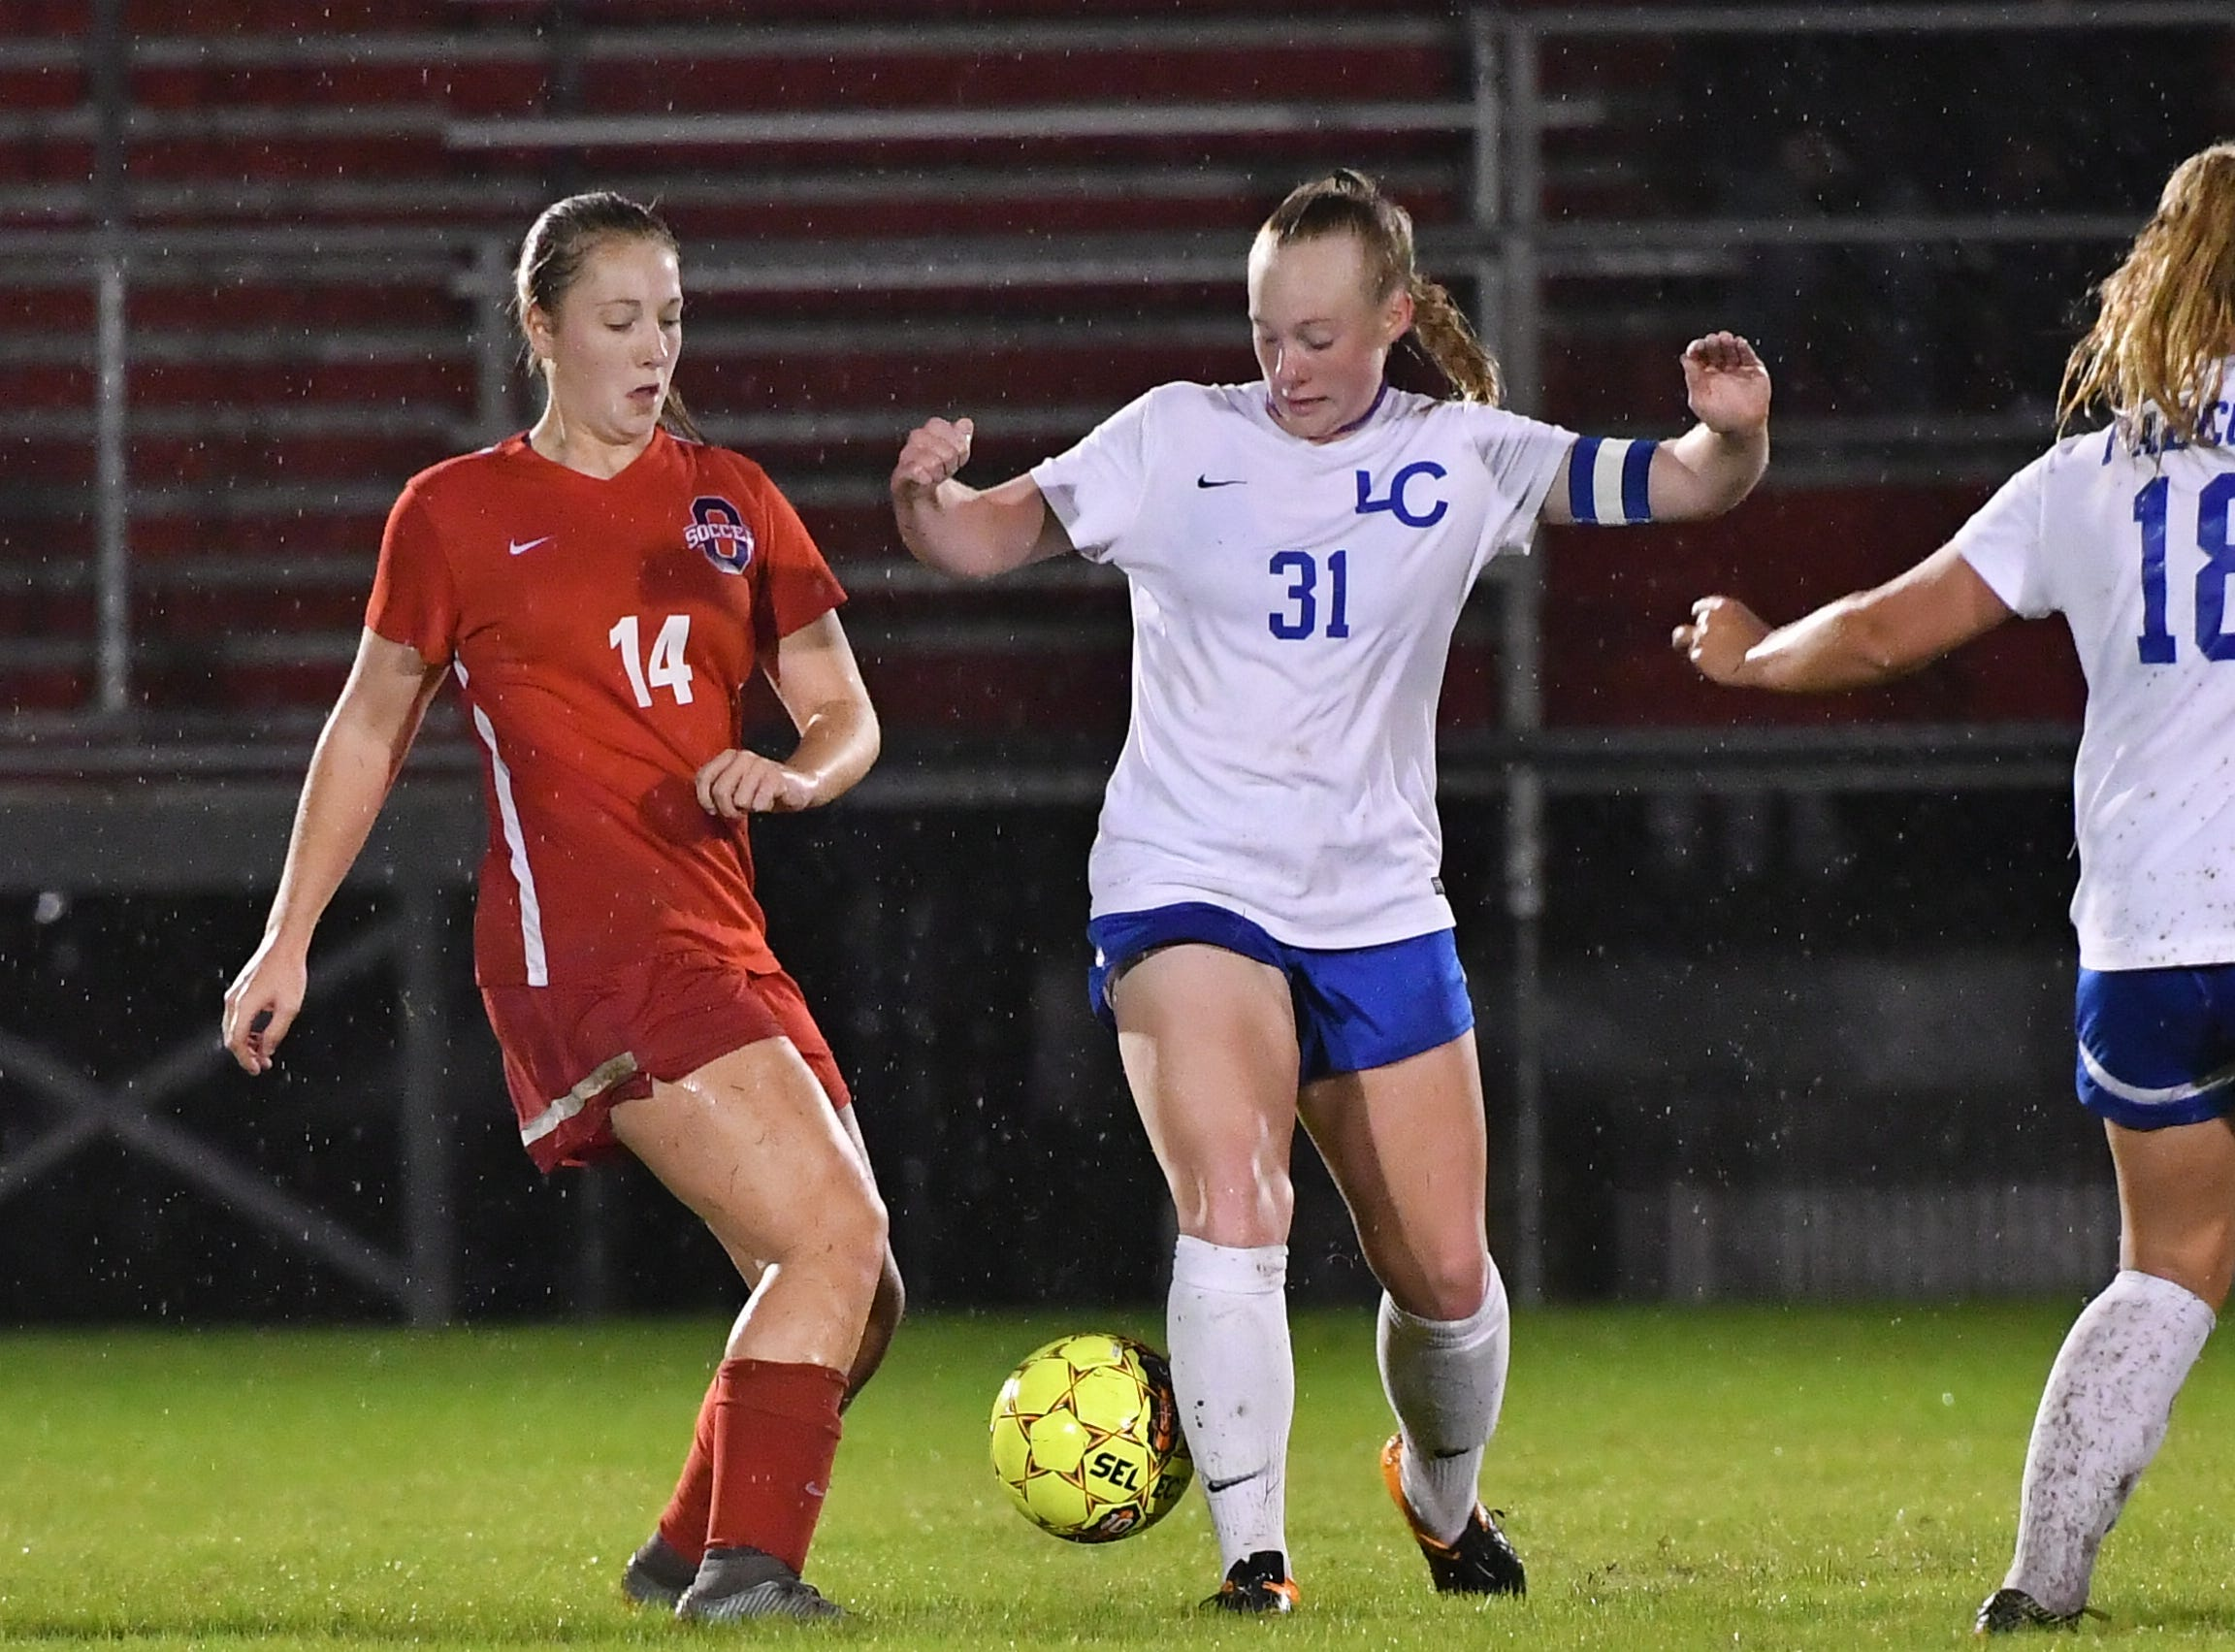 Oakland's Mary Grace Wright (14) and Lincoln County's Tessa Lewis battle during Tuesday's region semifinals.